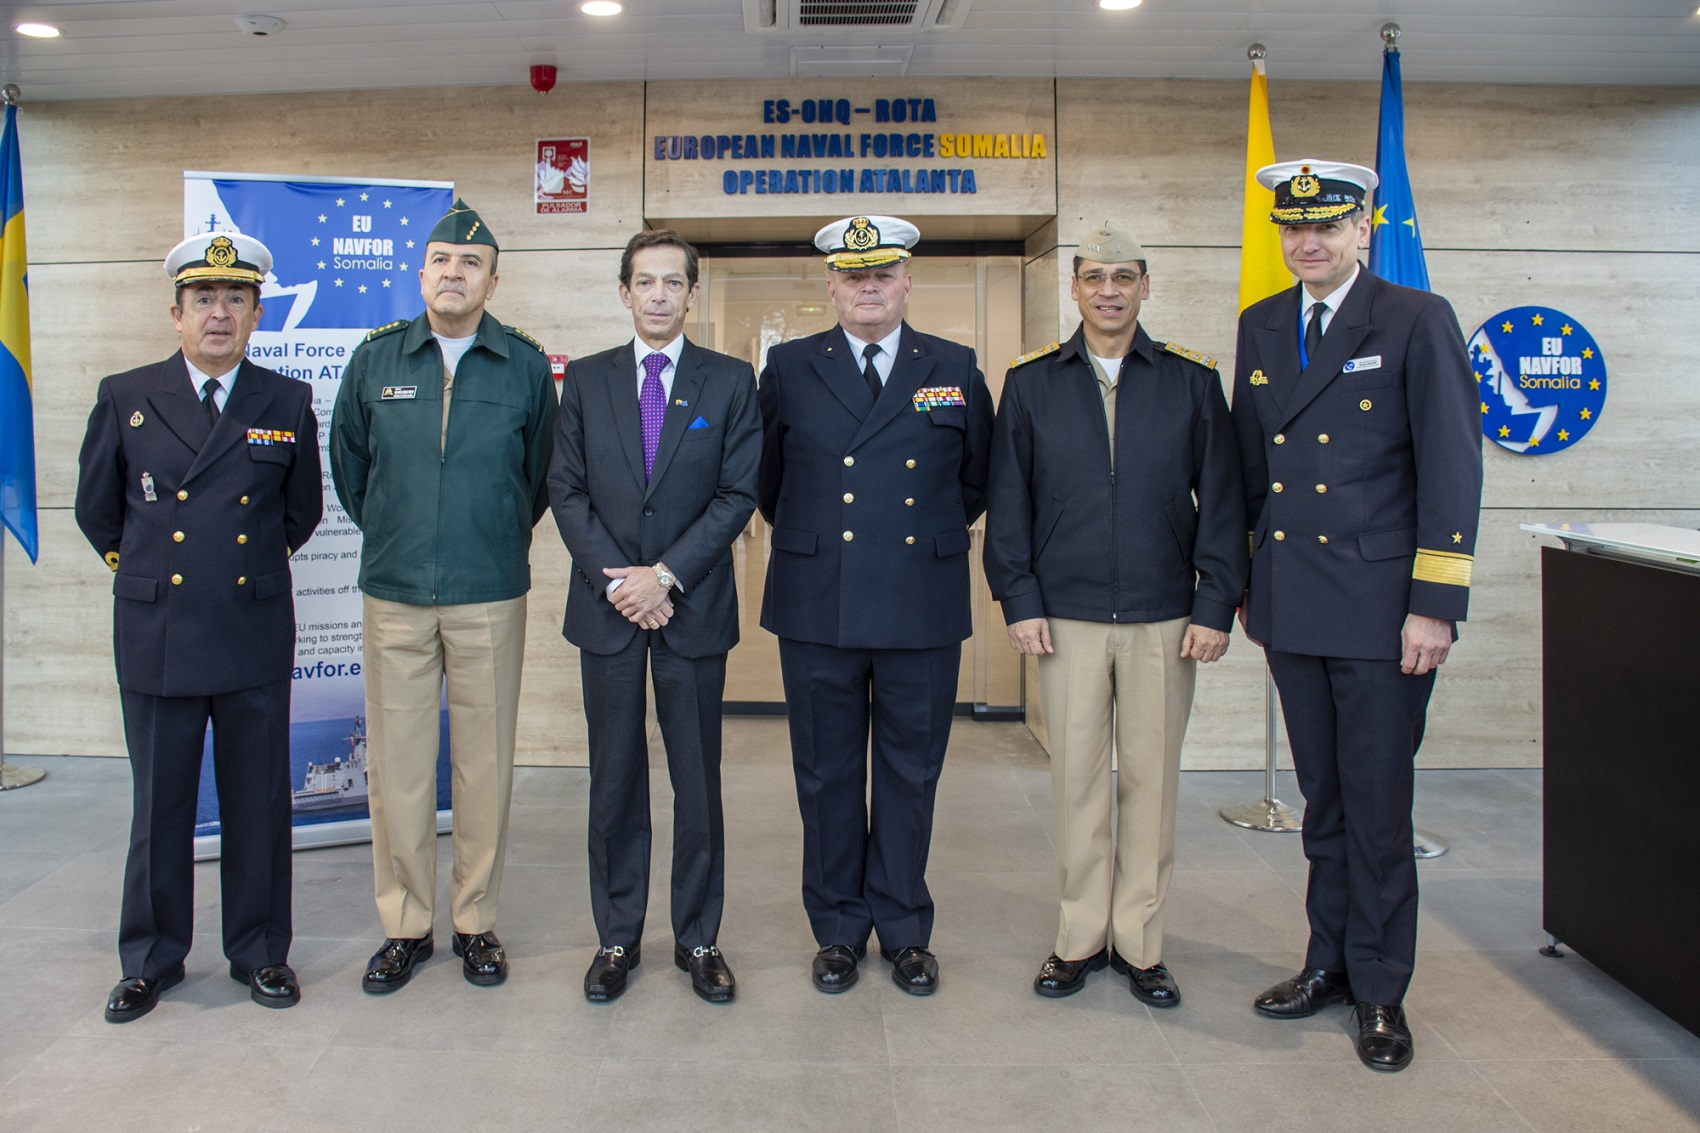 The Colombian ambassador in Brussels visits Operation Atalanta Headquarters